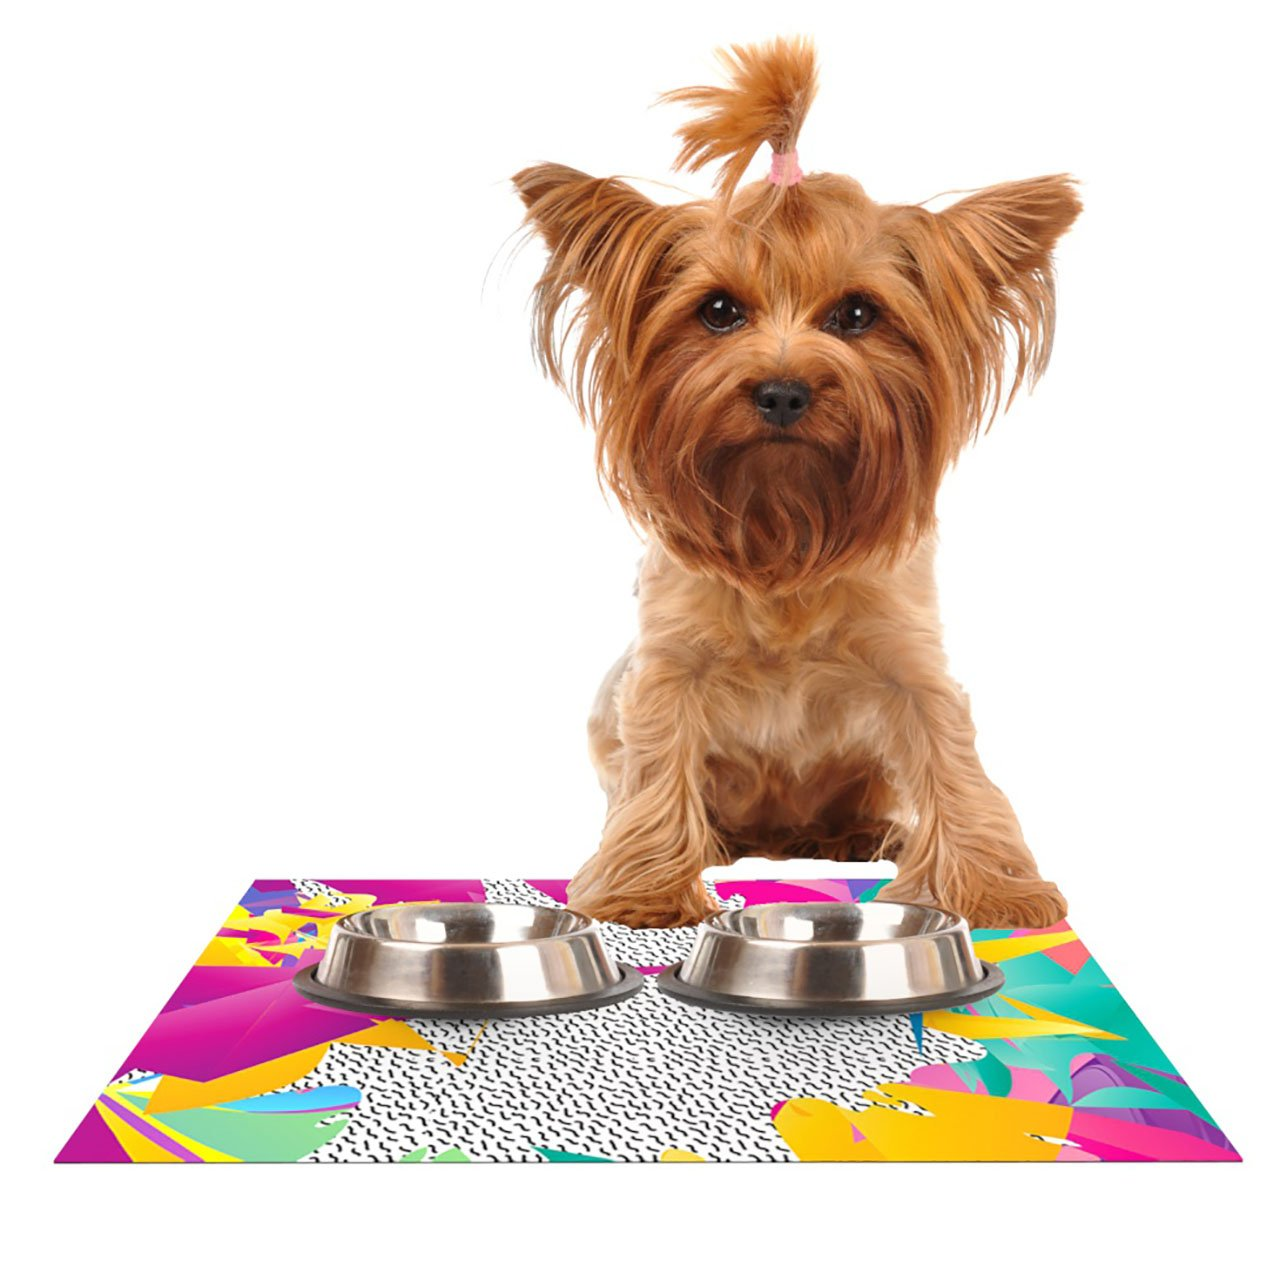 Kess InHouse Danny Ivan 80's Abstract  Pink Teal Pet Bowl Placemat, 18 by 13-Inch